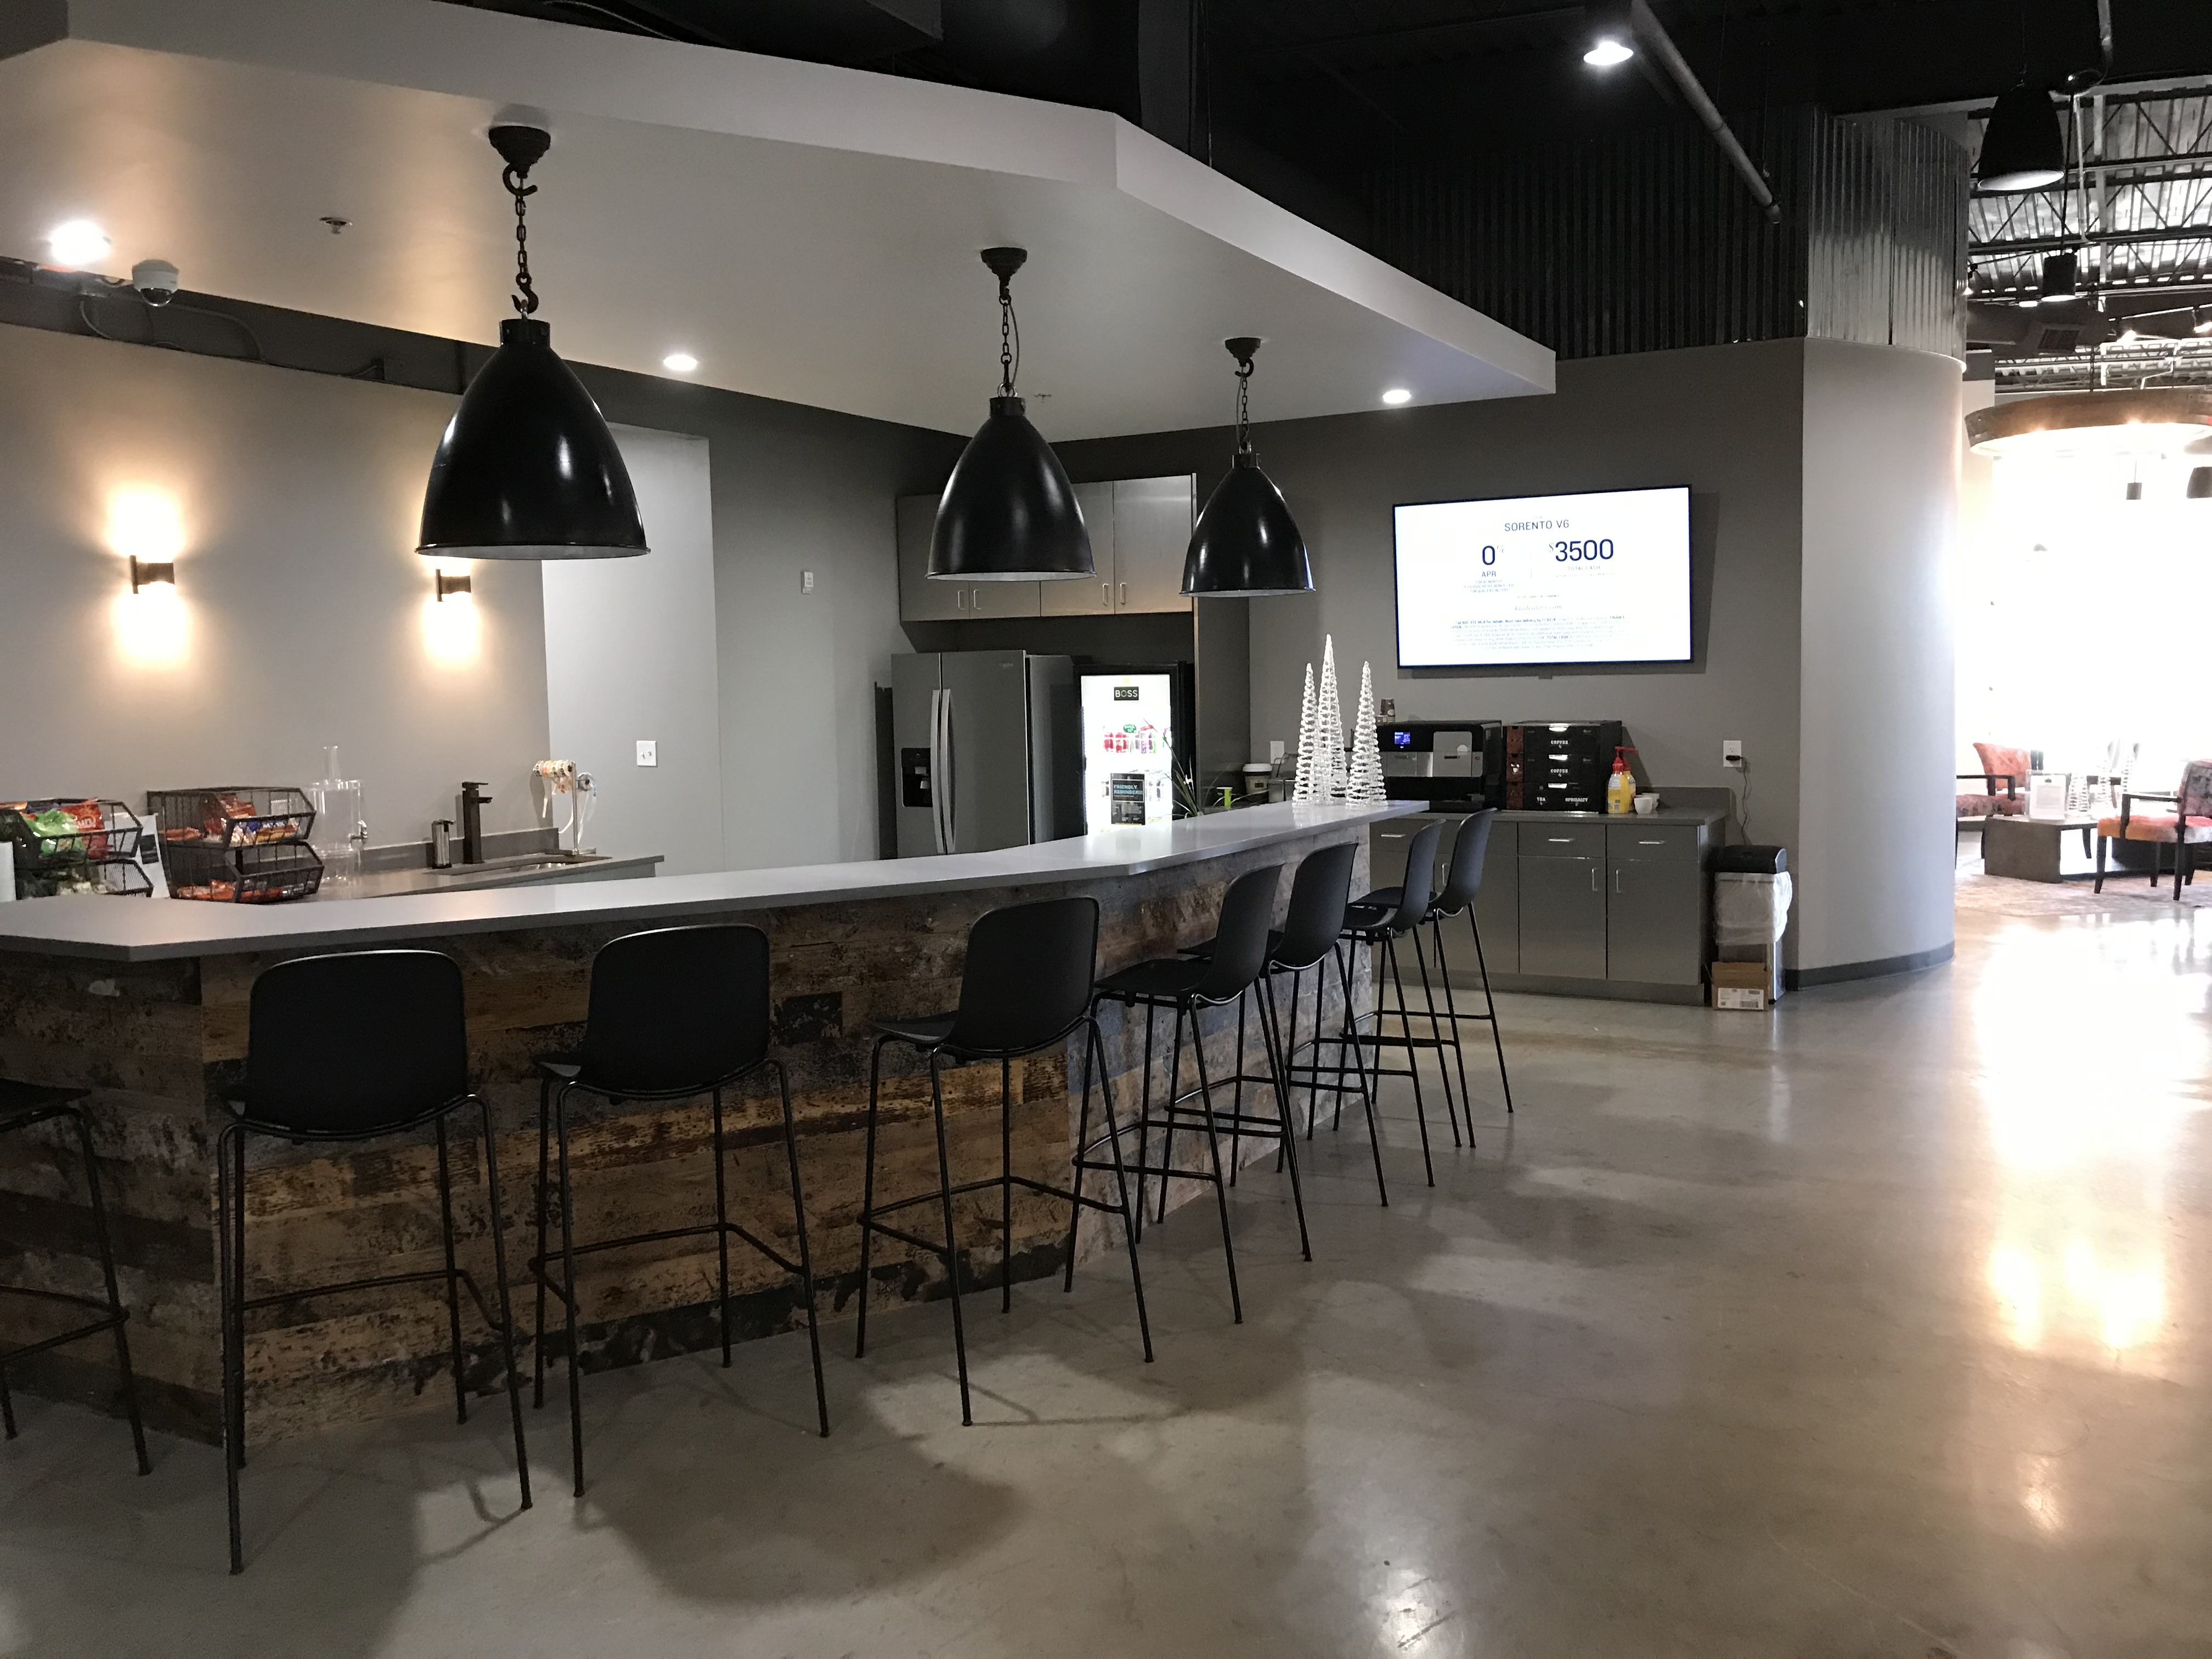 Boss office coworking fka foundry club grapevine tx